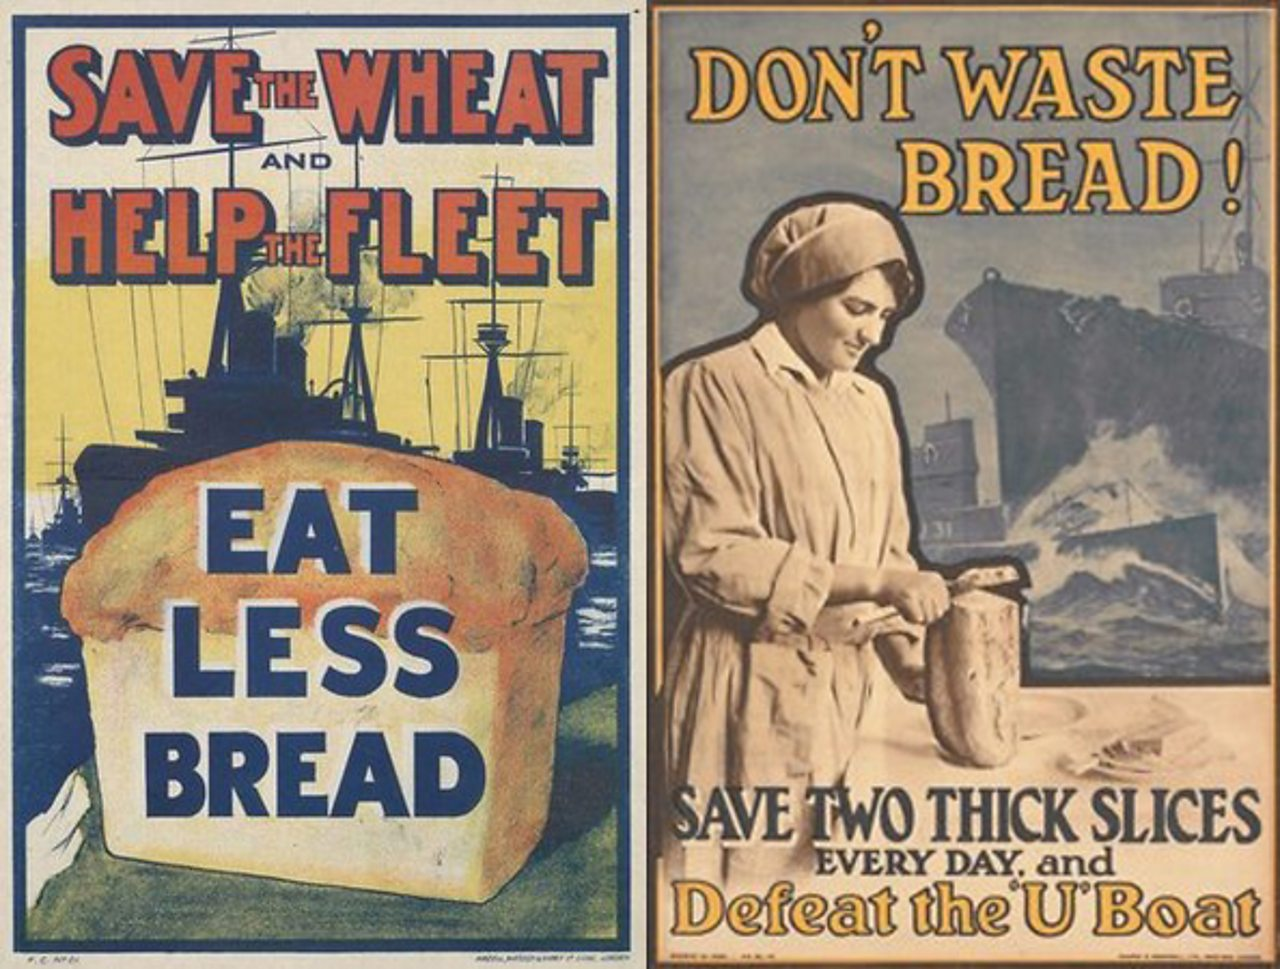 A government poster from World War One encouraging people to eat less bread